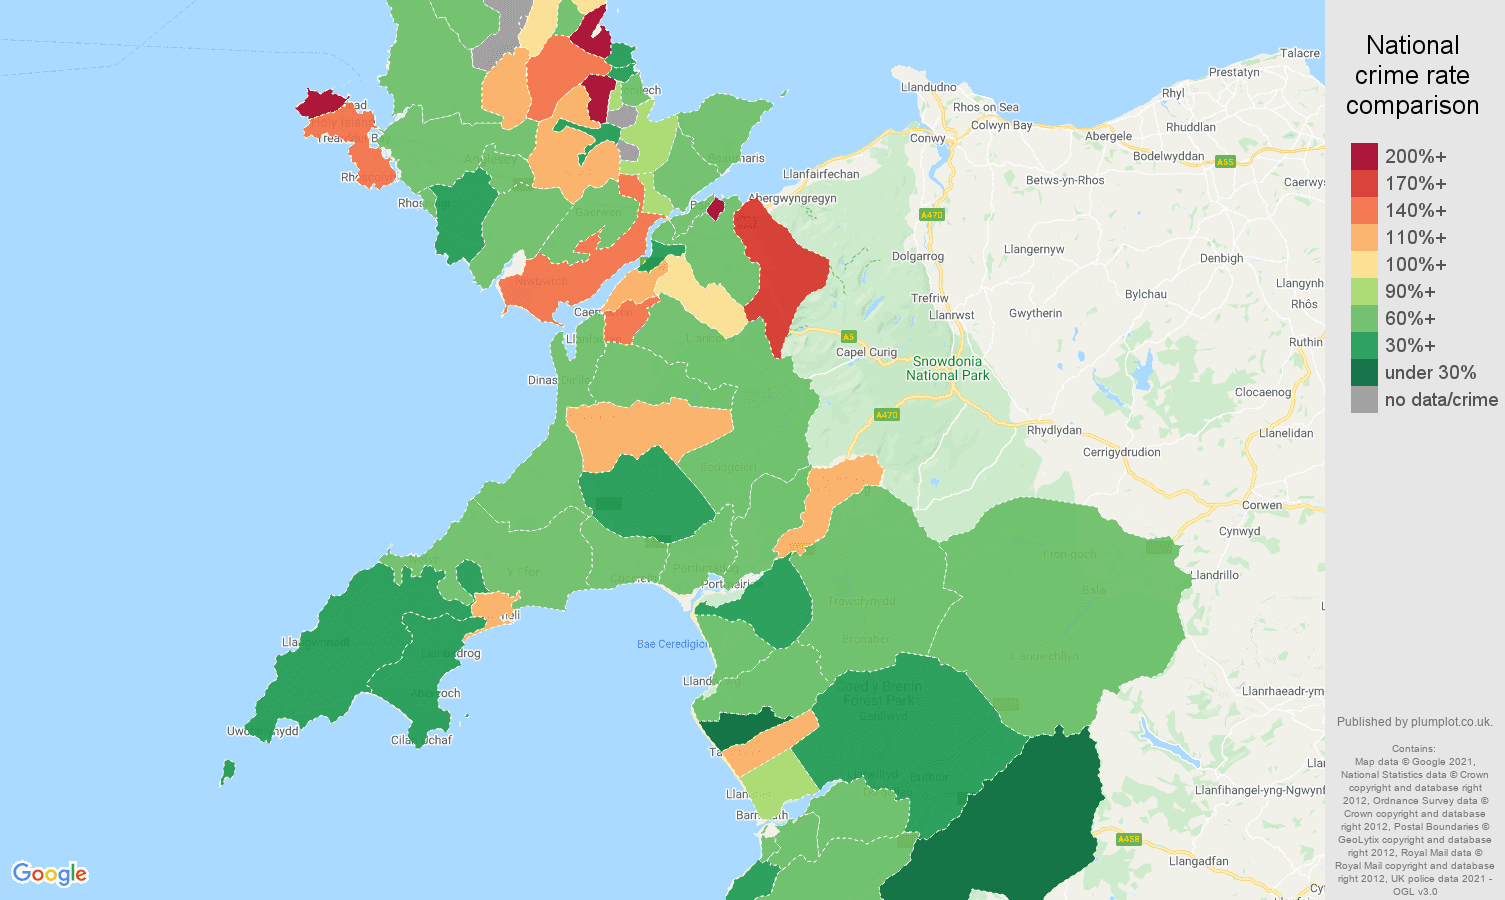 Gwynedd violent crime rate comparison map